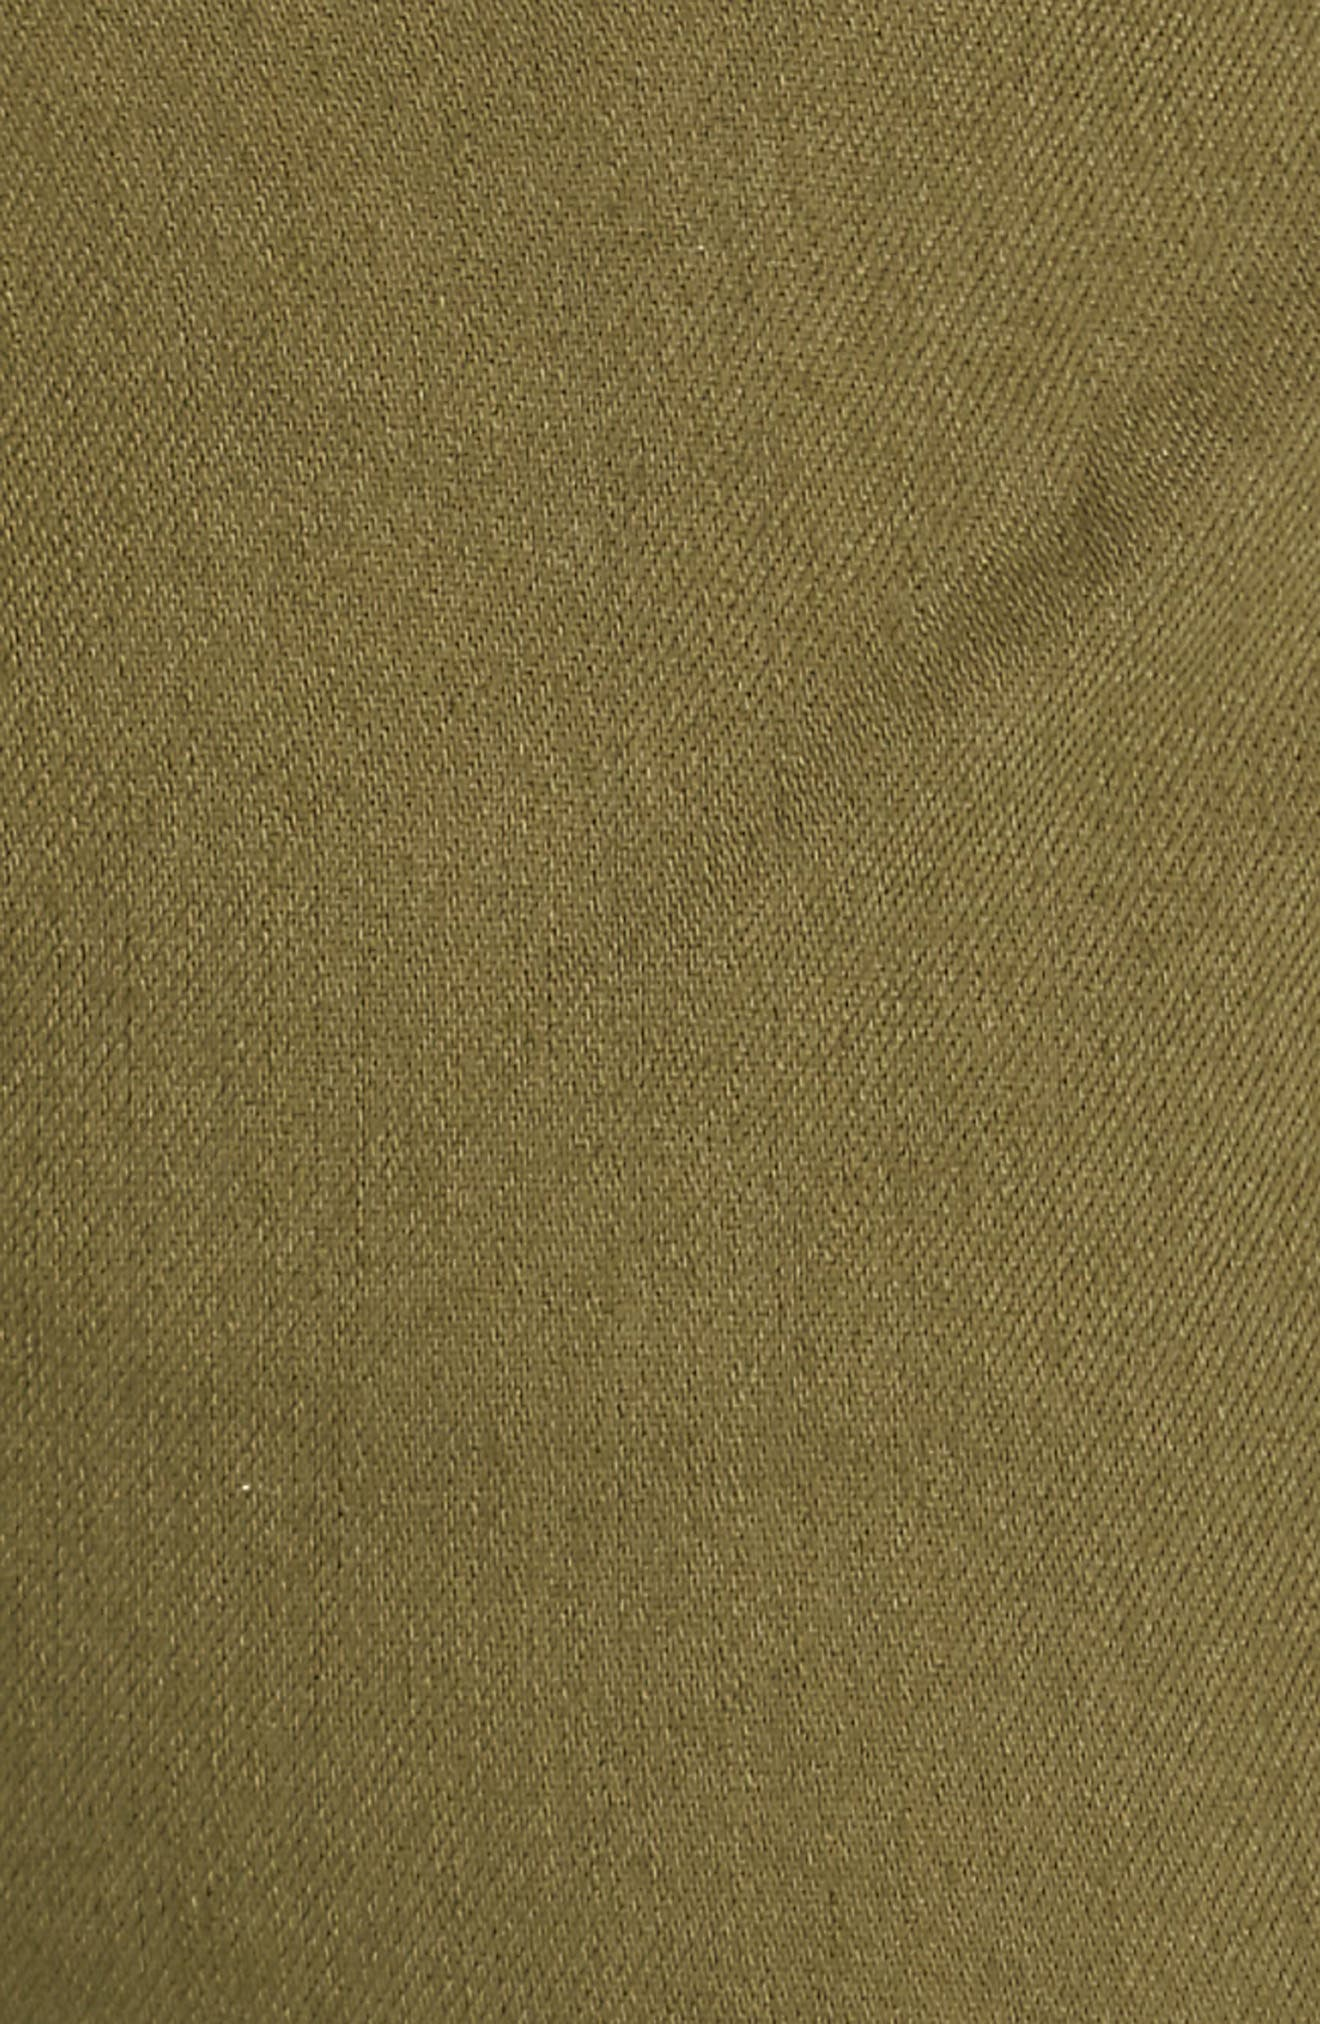 EILEEN FISHER, Slouchy Ankle Pants, Alternate thumbnail 6, color, OLIVE